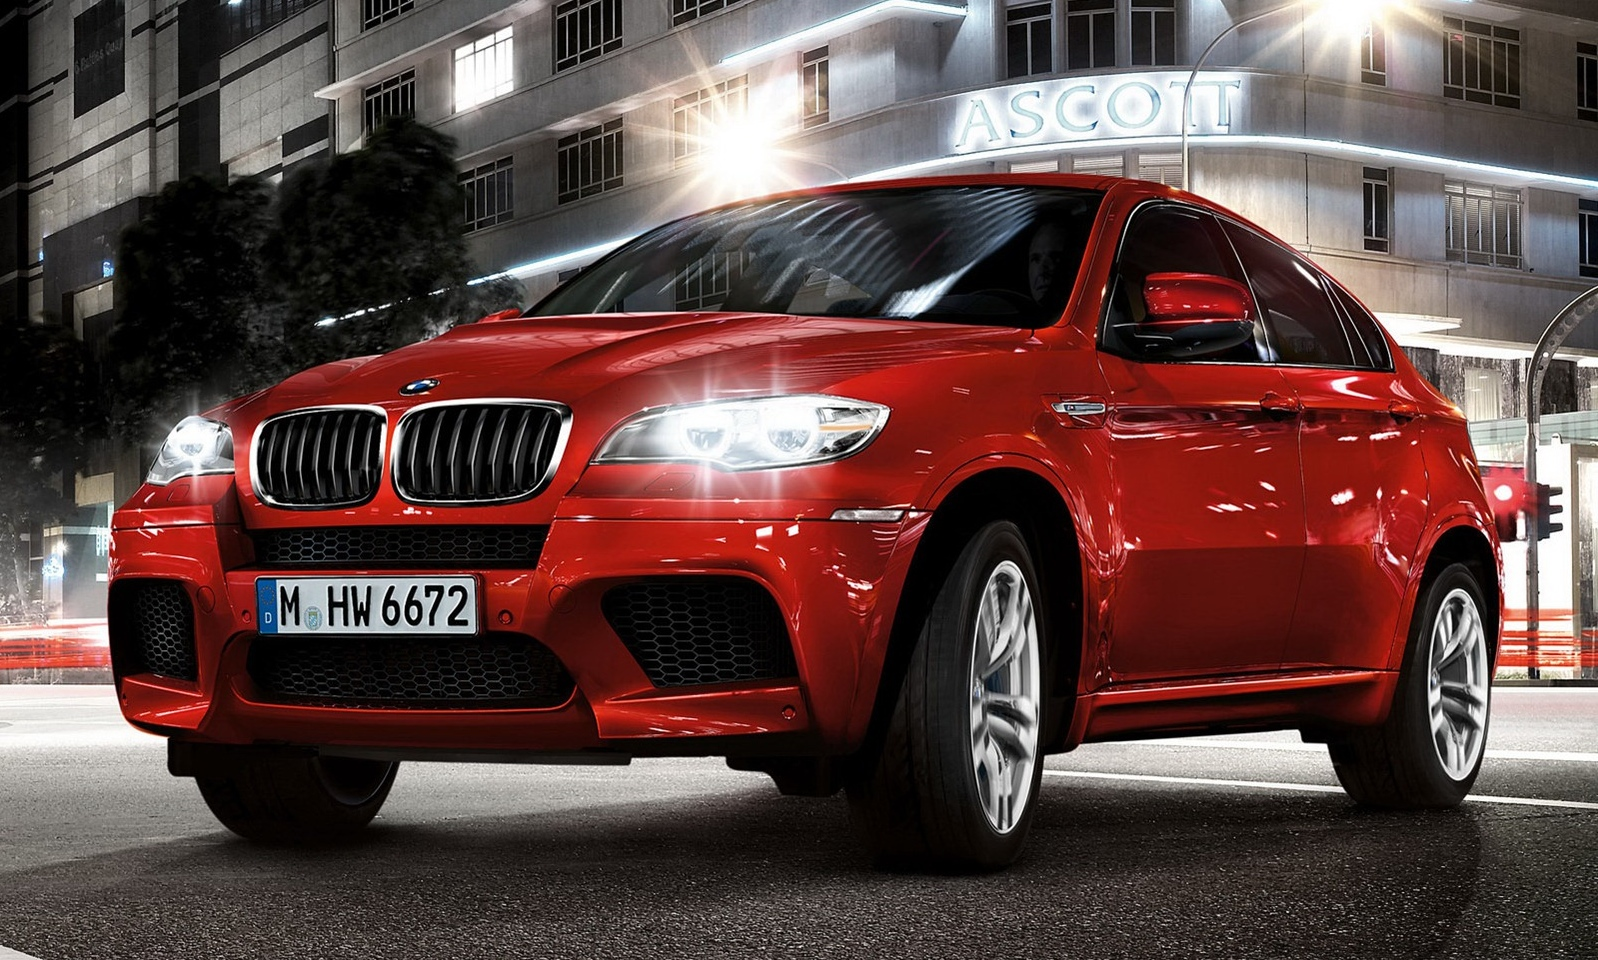 bmw x6 2013 poder dise o y tecnolog a lista de carros. Black Bedroom Furniture Sets. Home Design Ideas